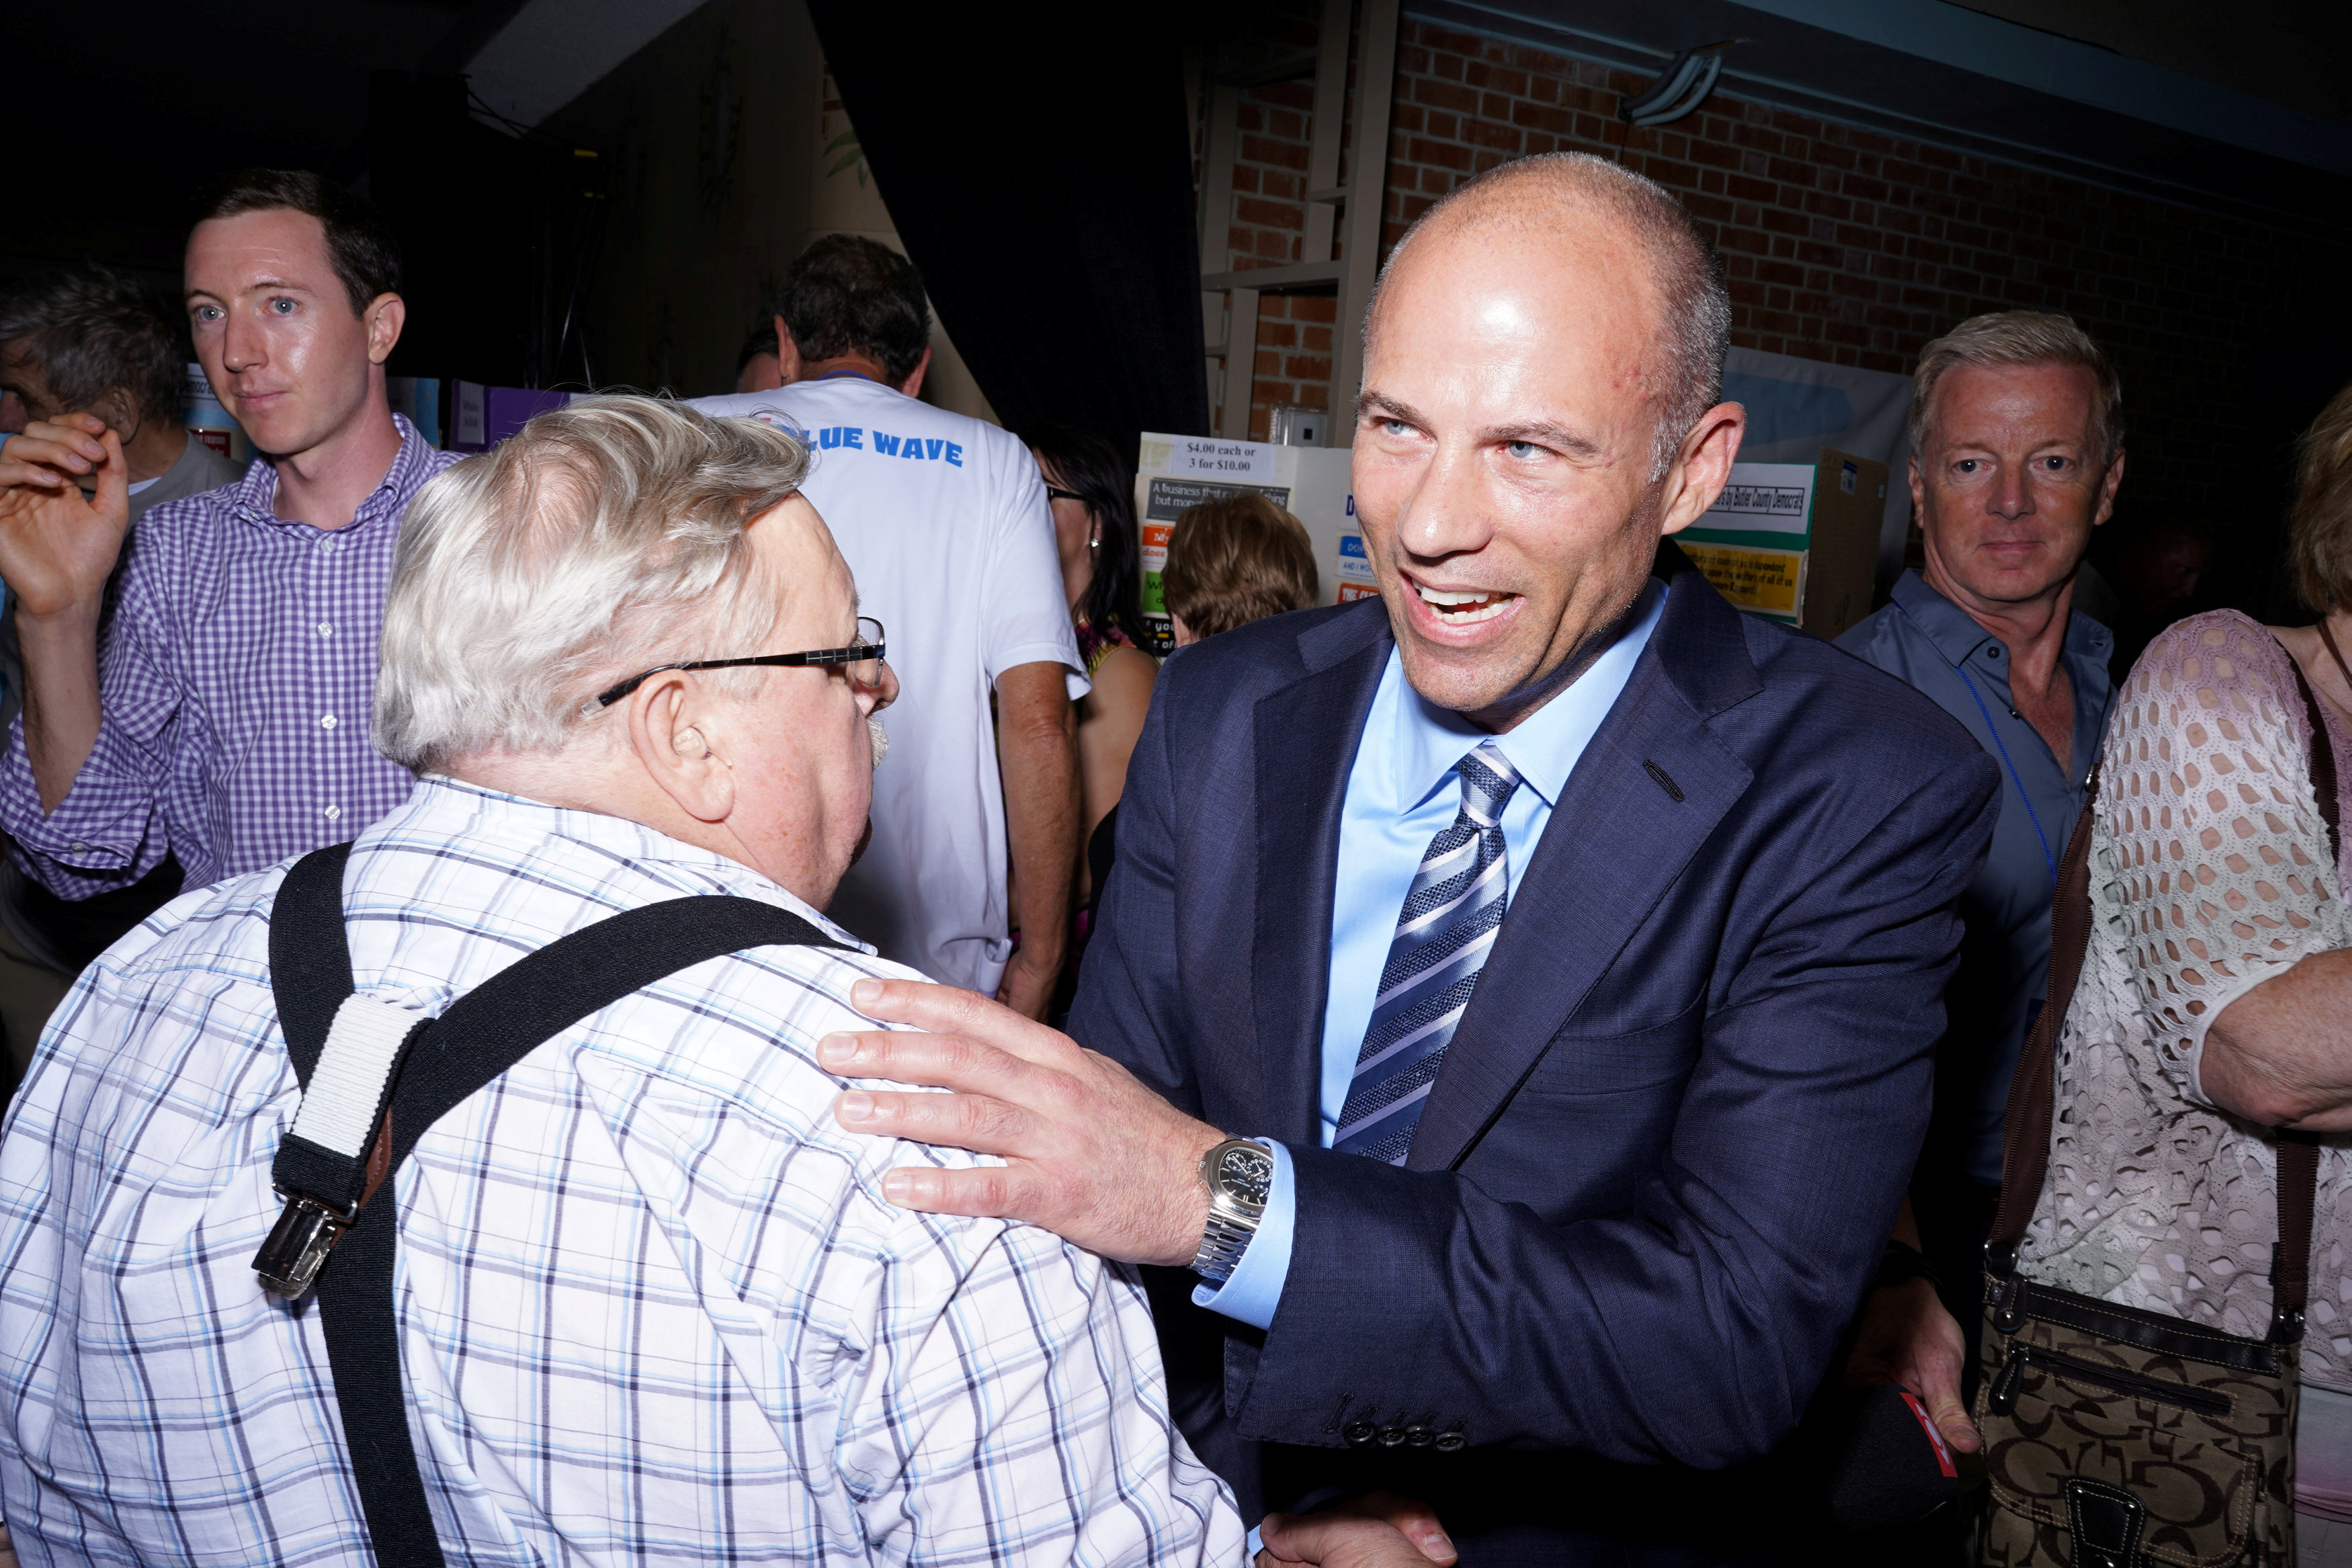 Michael Avenatti talks with supporters after speaking at the Iowa Democratic Wing Ding in Clear Lake, Iowa, U.S., August 10, 2018. Picture taken August 10, 2018. REUTERS/KC McGinnis - RC16EB375840